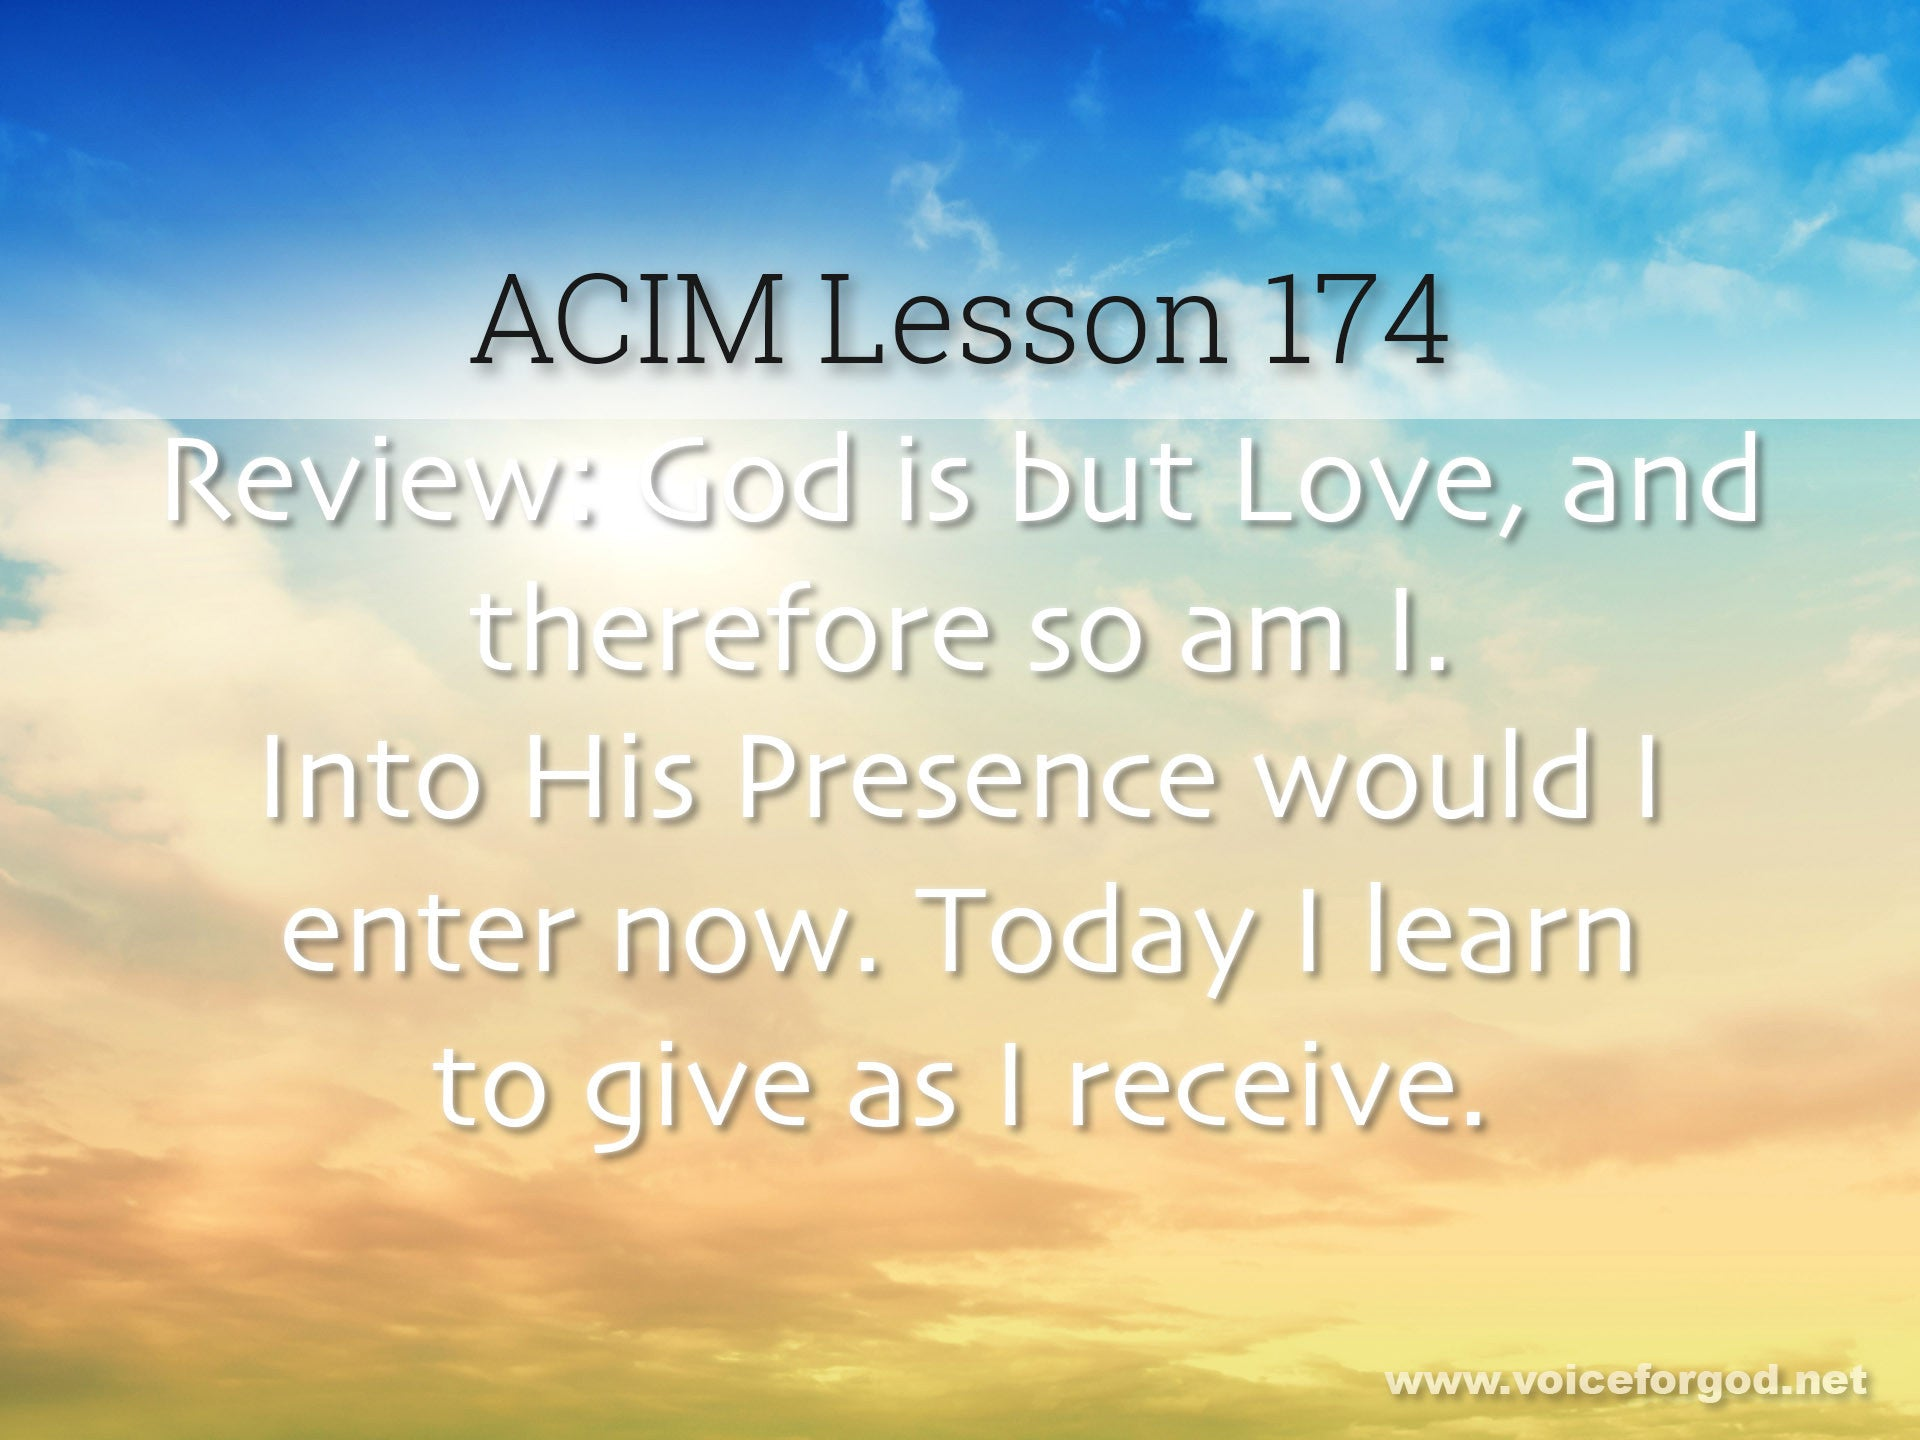 ACIM Lesson 174 - A Course in Miracles Workbook Lesson 174